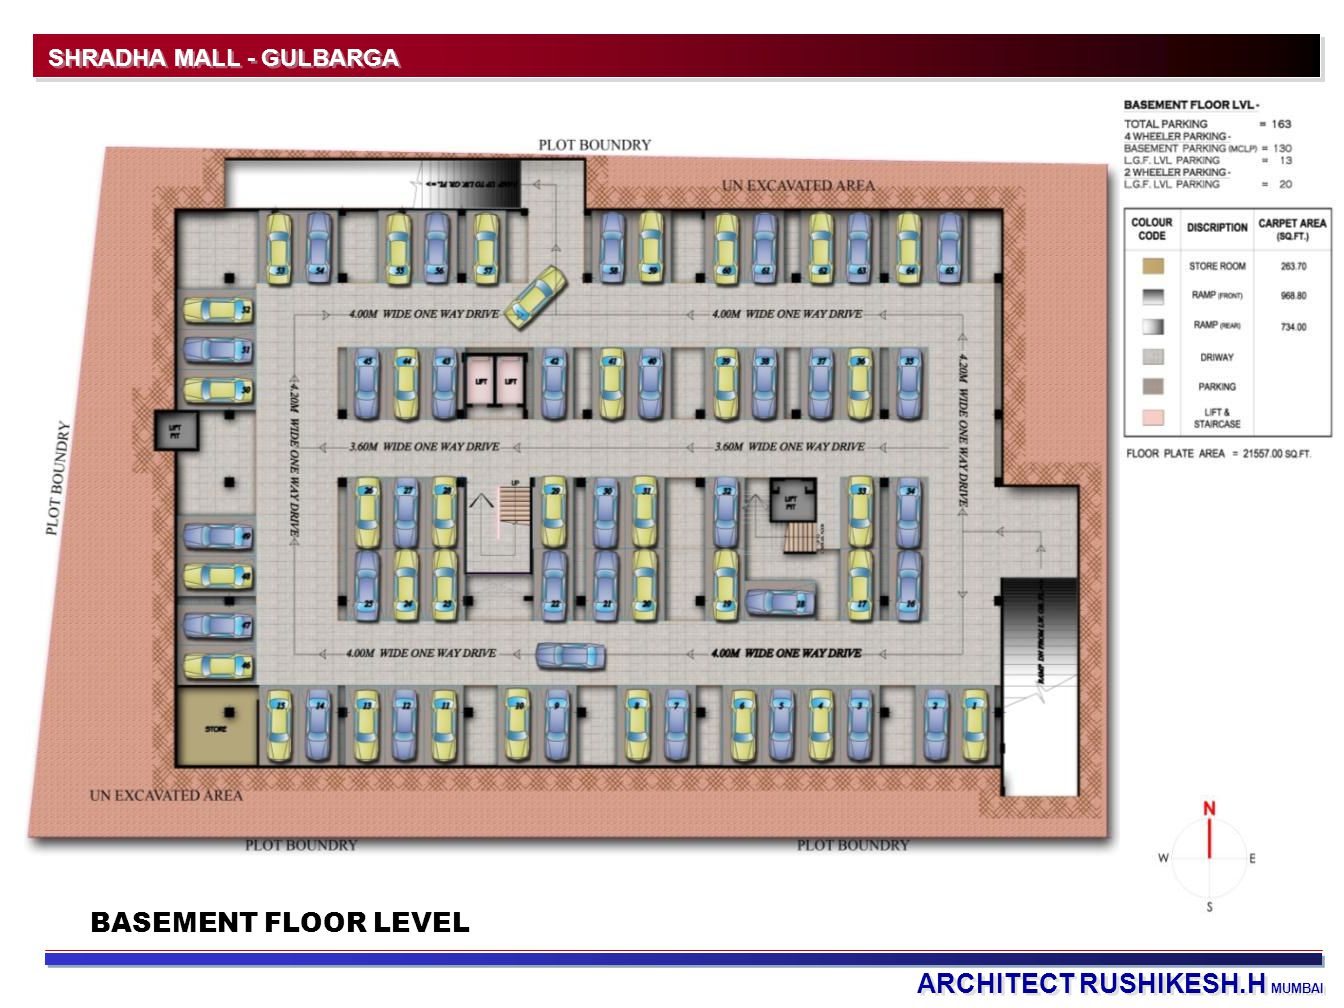 ARCHITECT RUSHIKESH.H MUMBAI SHRADHA MALL - GULBARGA BASEMENT FLOOR LEVEL